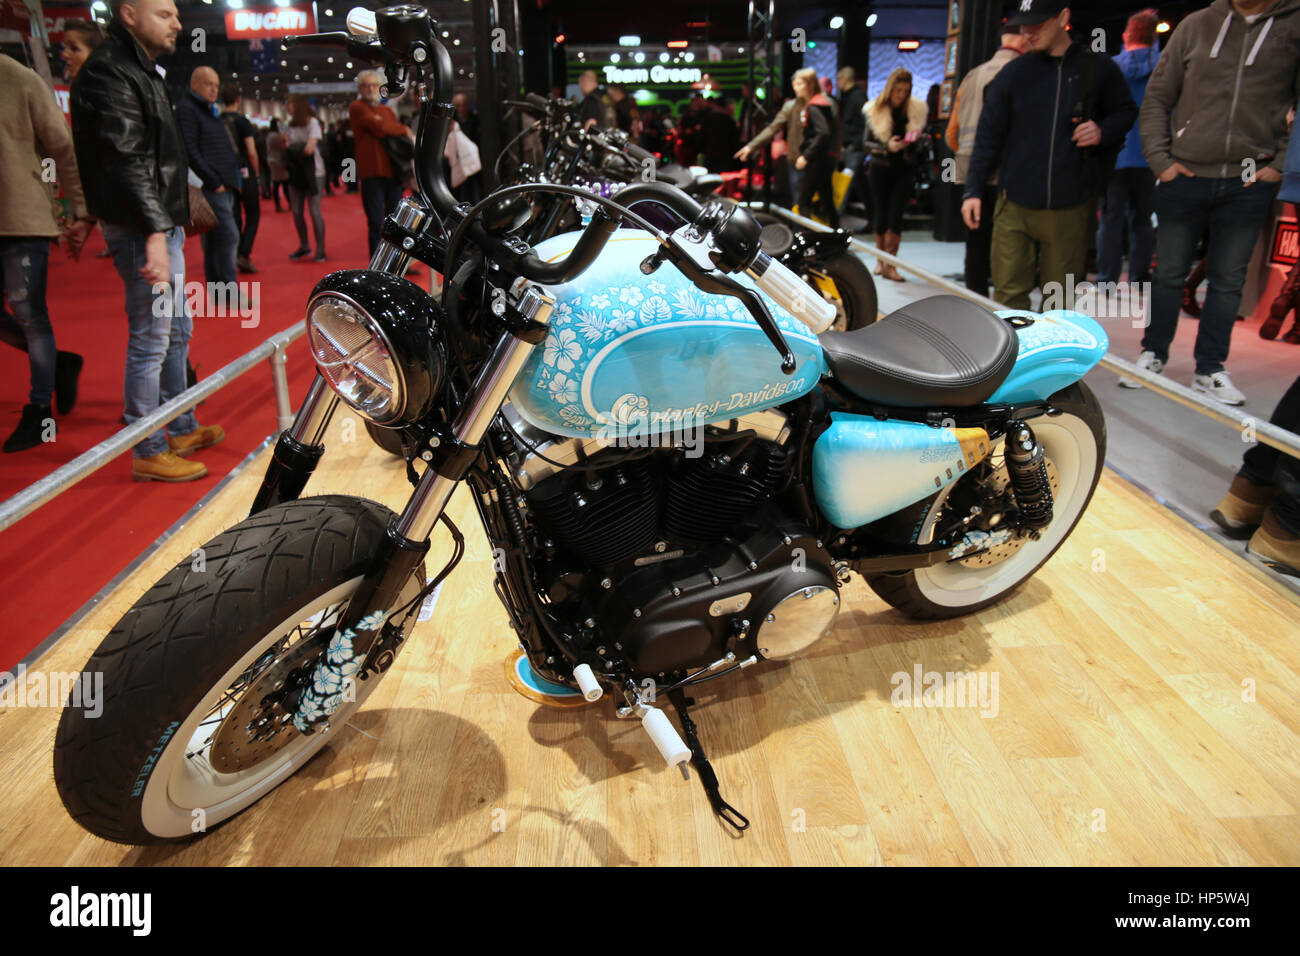 London UK  19-February-2017 The Carole Nash MCN Motorcycle Show 2017 had 22 of the world's leading manufacturers - Stock Image